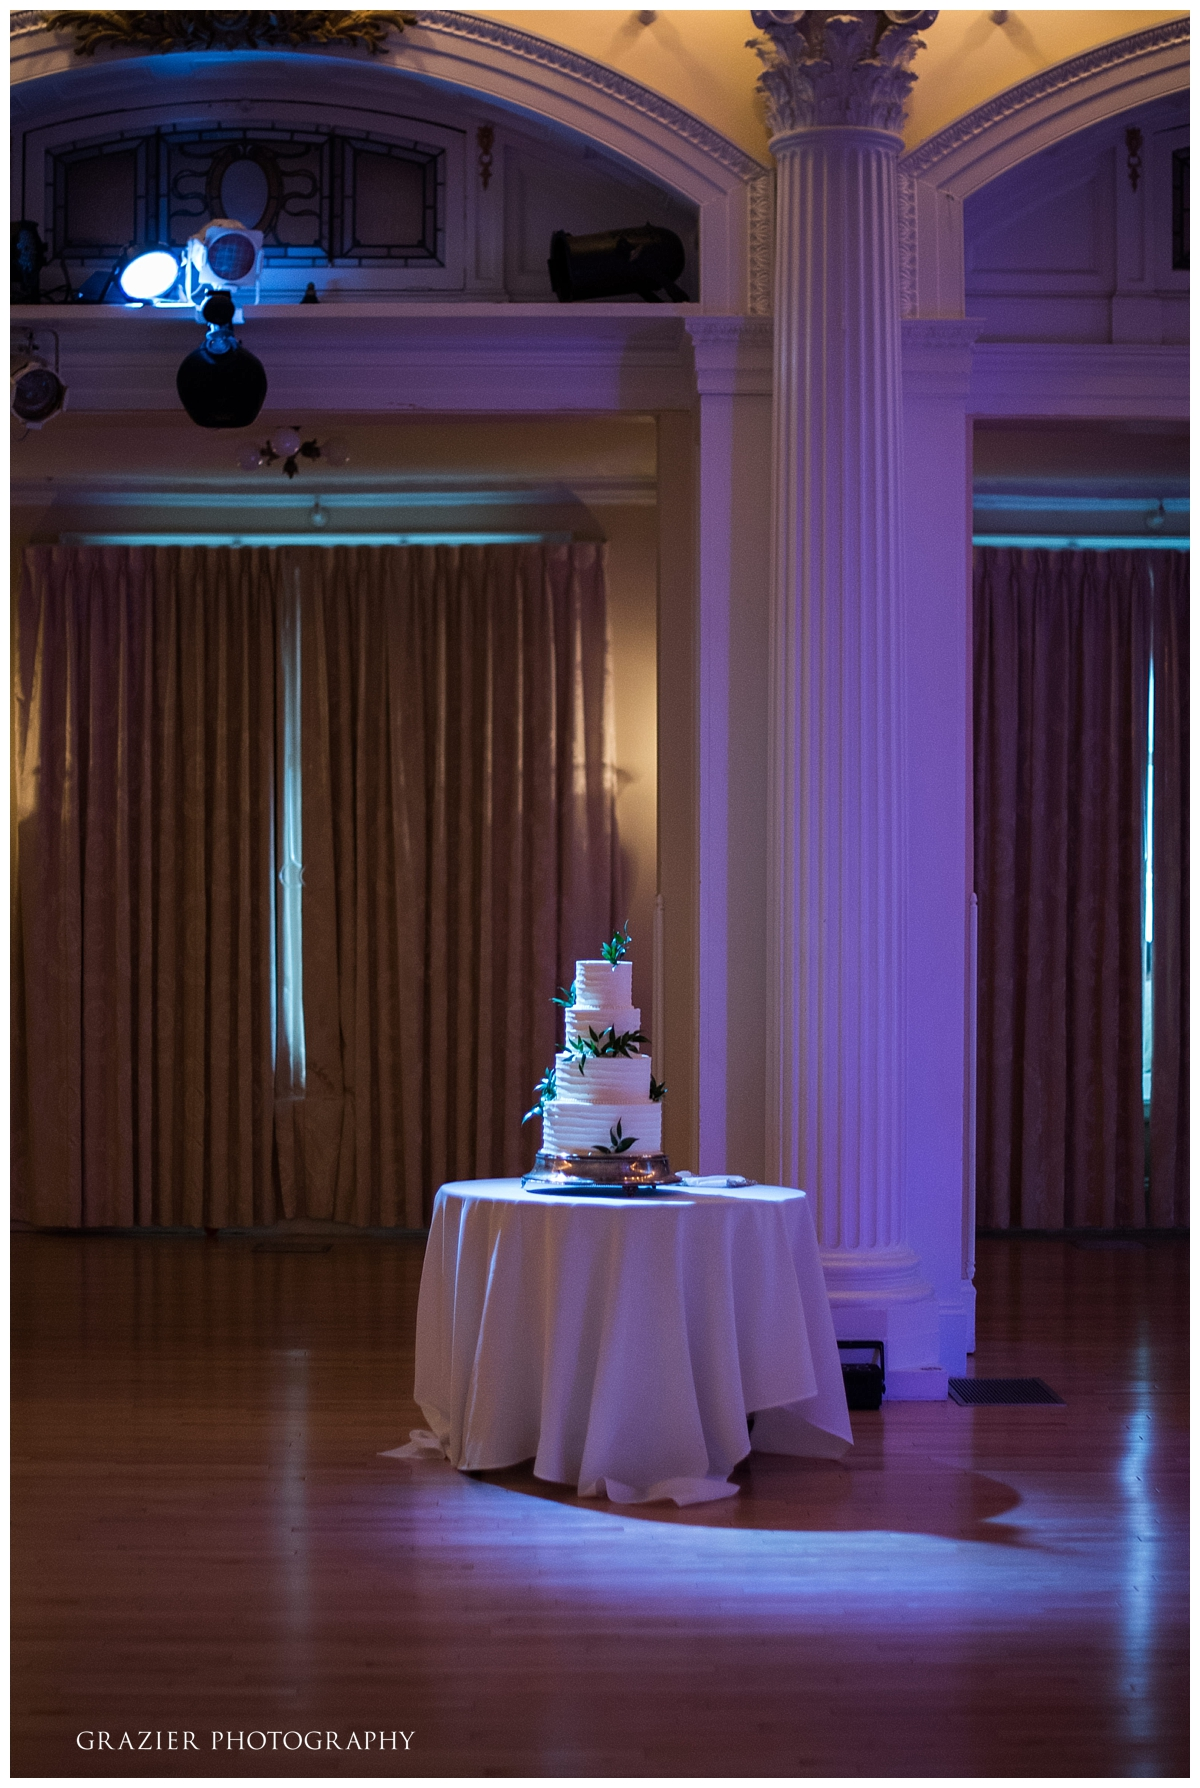 Mount Washington Hotel Wedding Grazier Photography 171125-462_WEB.jpg